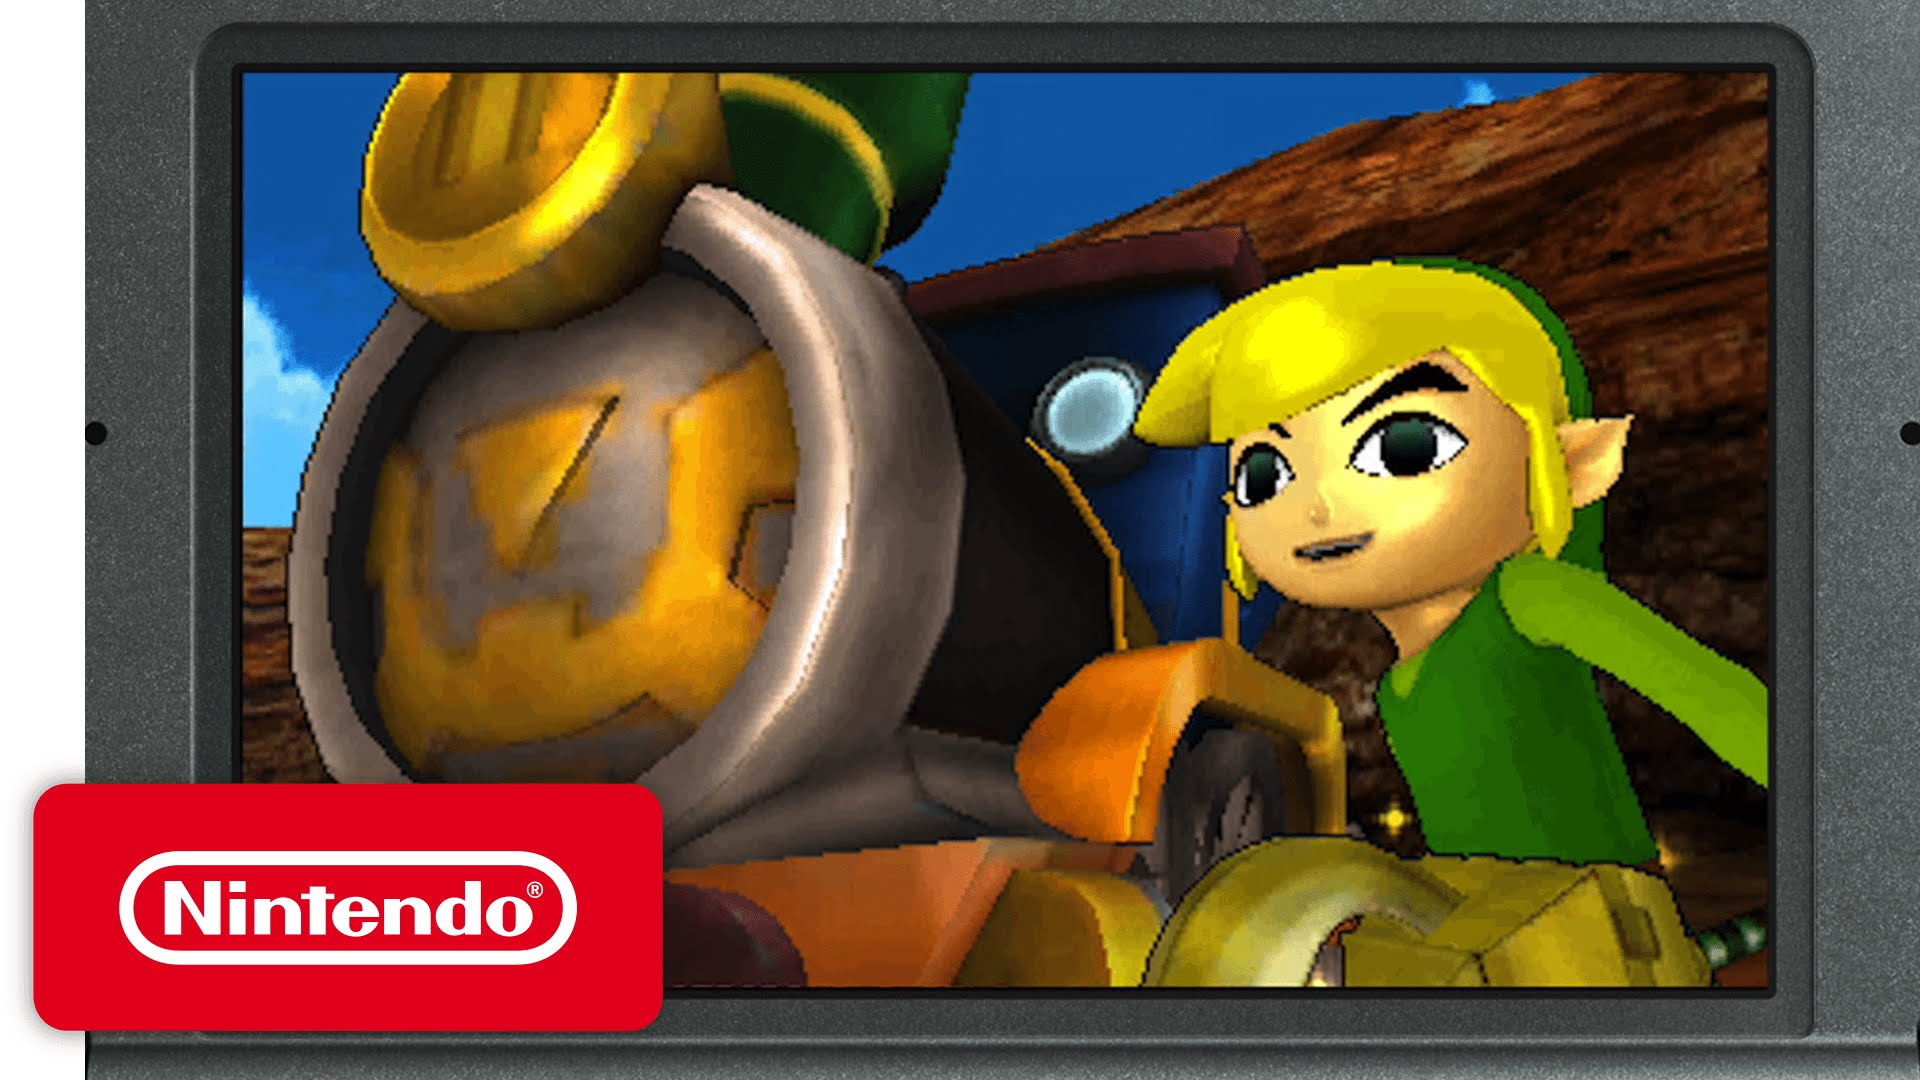 Hyrule Warriors Legends - DLC Pack 3 Trailer